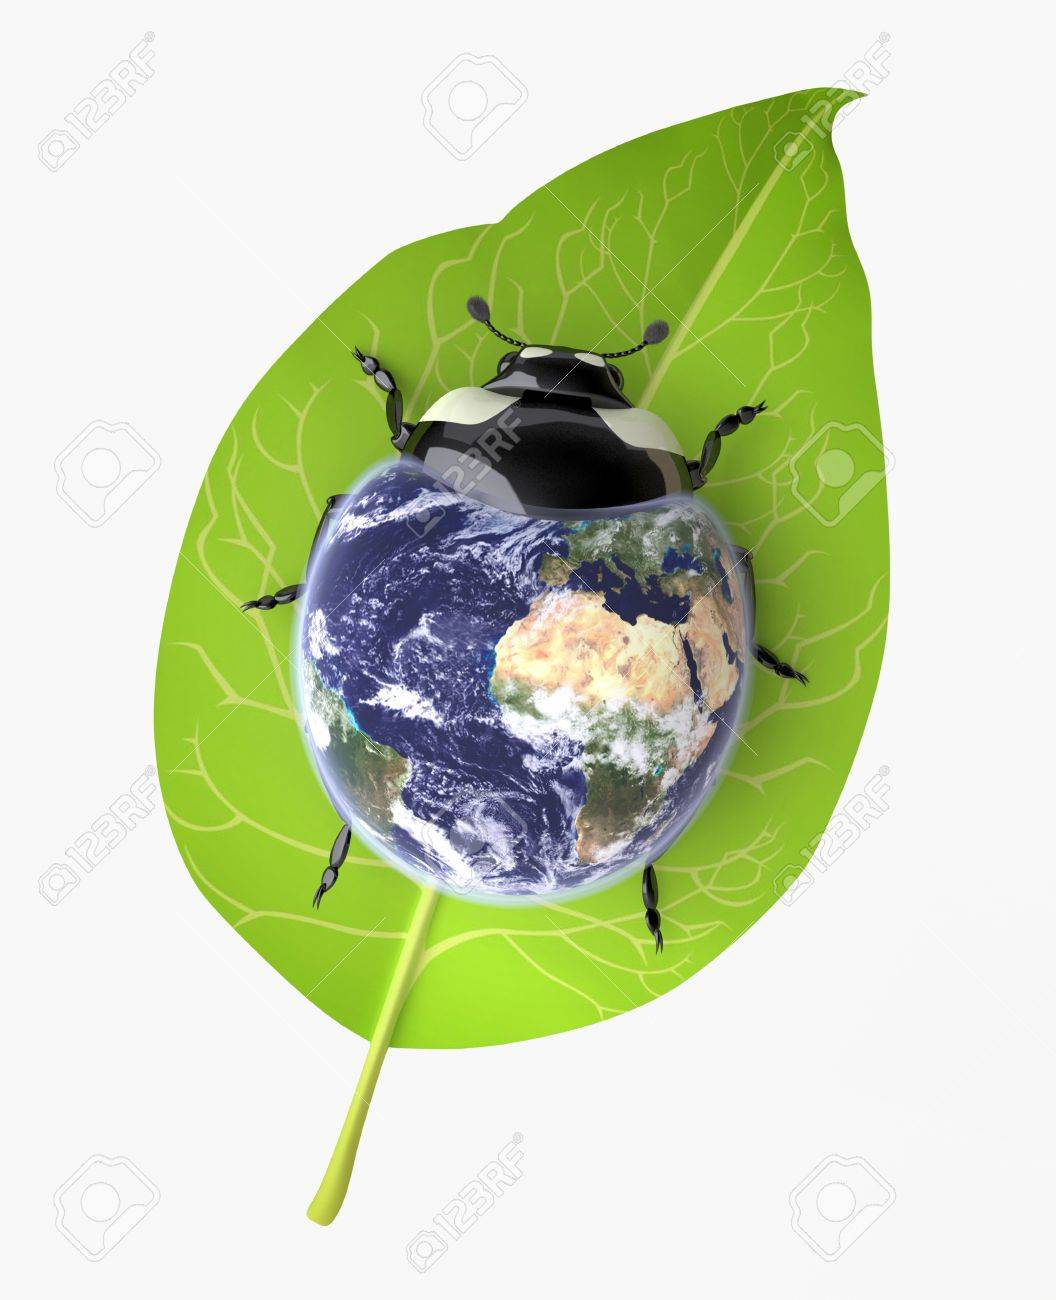 The Three-dimensional Beetle symbolizing Environmental Awareness and an Acceptance of Responsibility for the Care of our Earth; Globe mapping image provided by NASA http://visibleearth.nasa.gov/view.php?id=57735 Stock Photo - 18560472